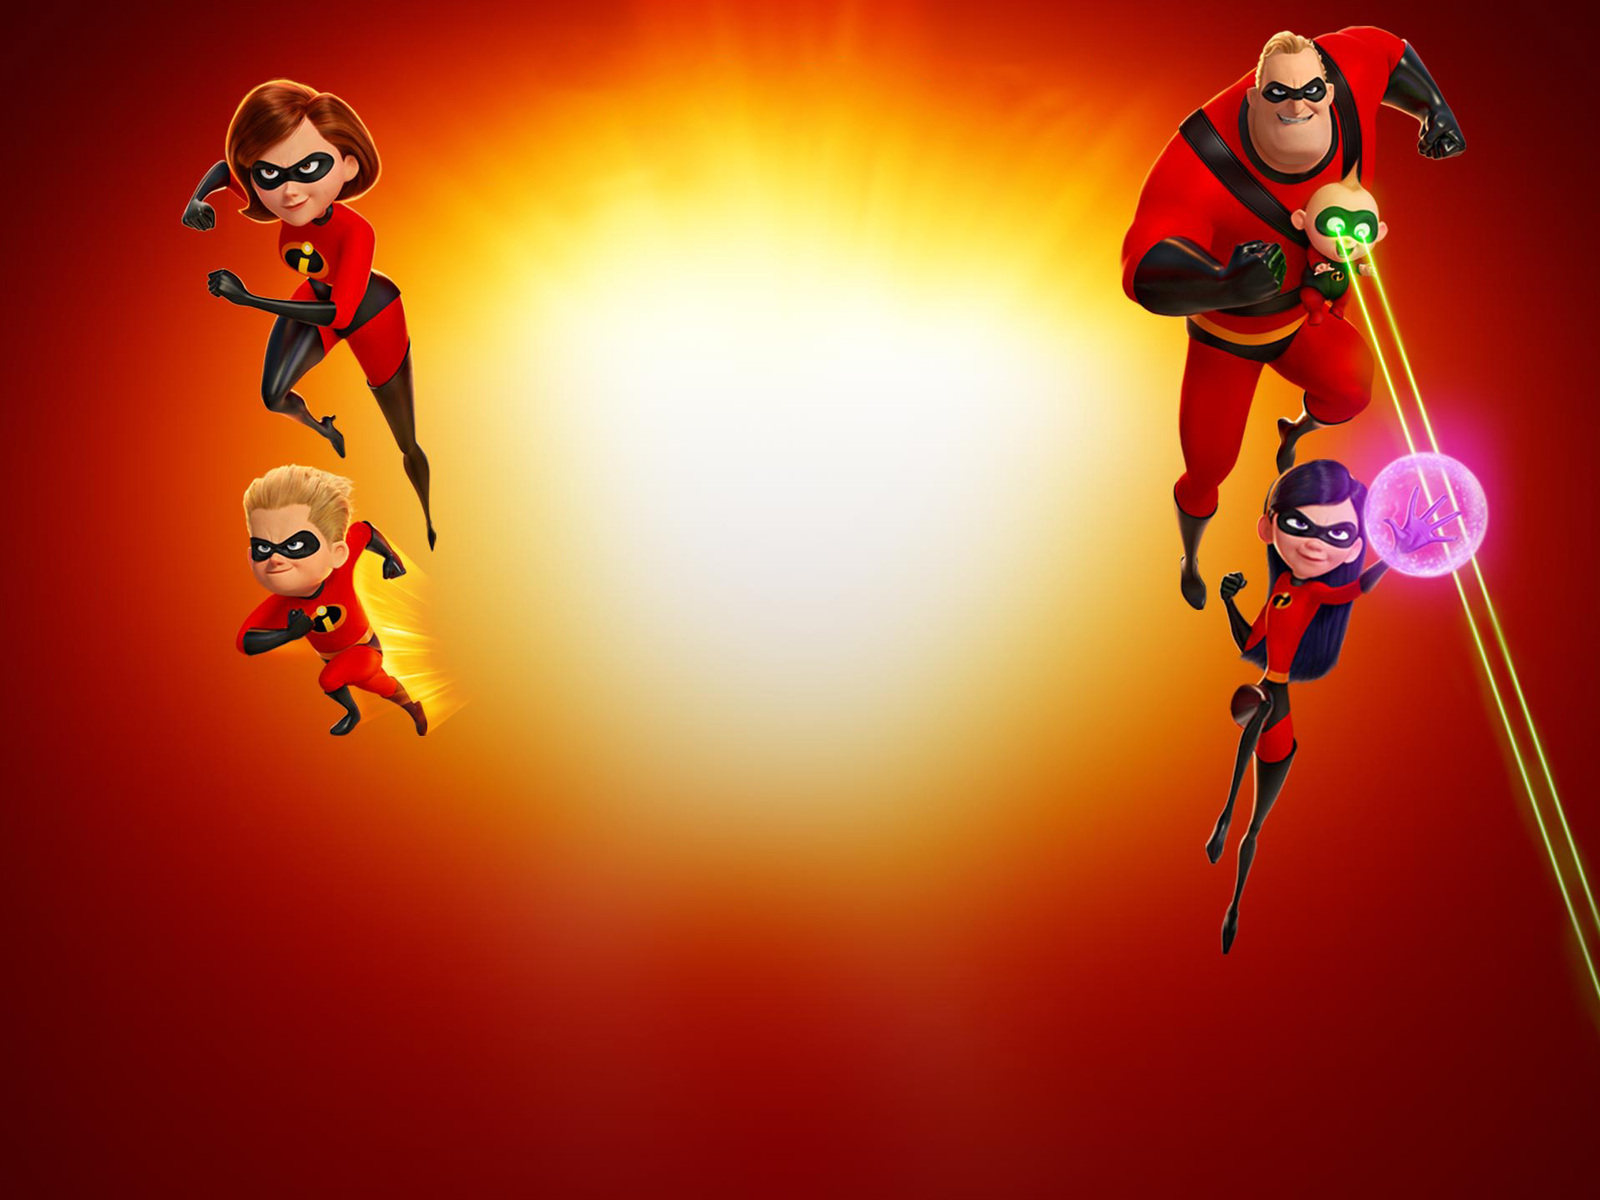 1600x1200 The Incredibles 2 Movie Poster 1600x1200 Resolution Hd 4k Wallpapers Images Backgrounds Photos And Pictures